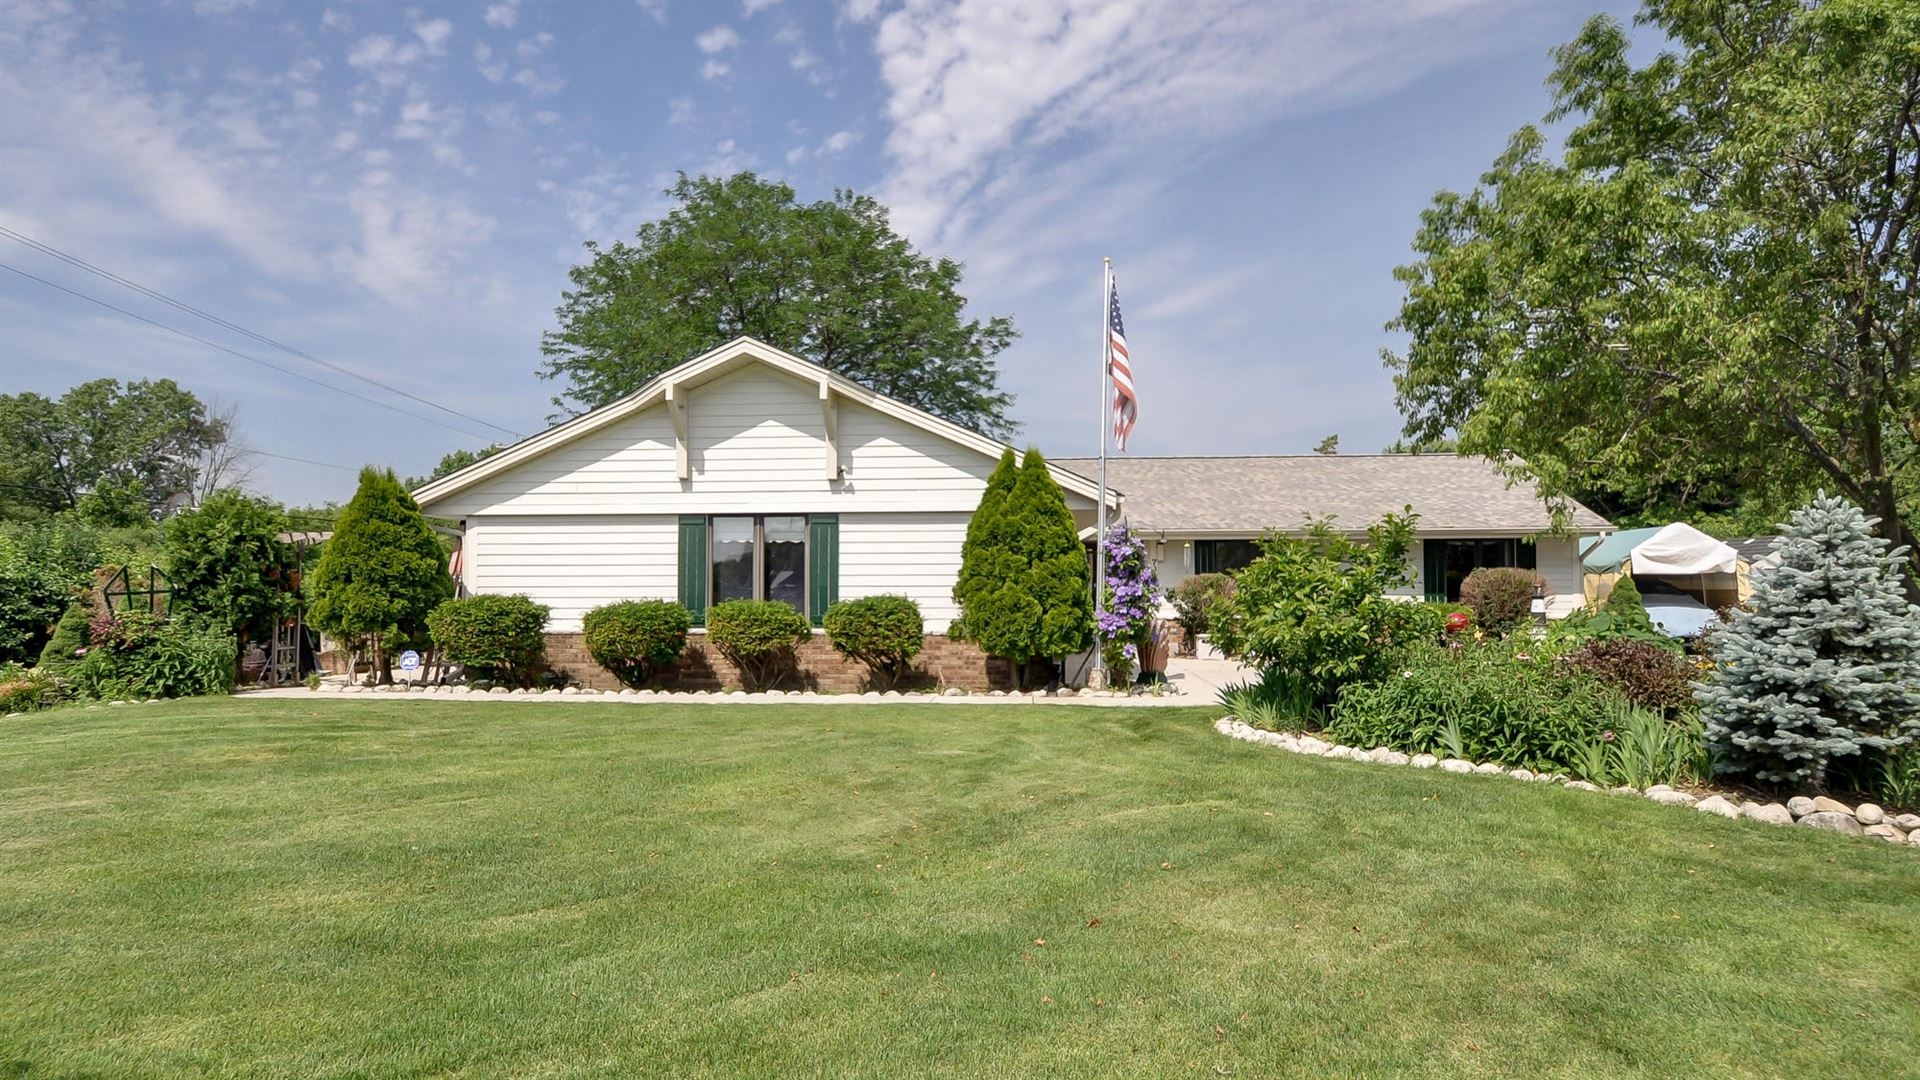 7867 S 83rd St, Franklin, WI 53132 - #: 1670117